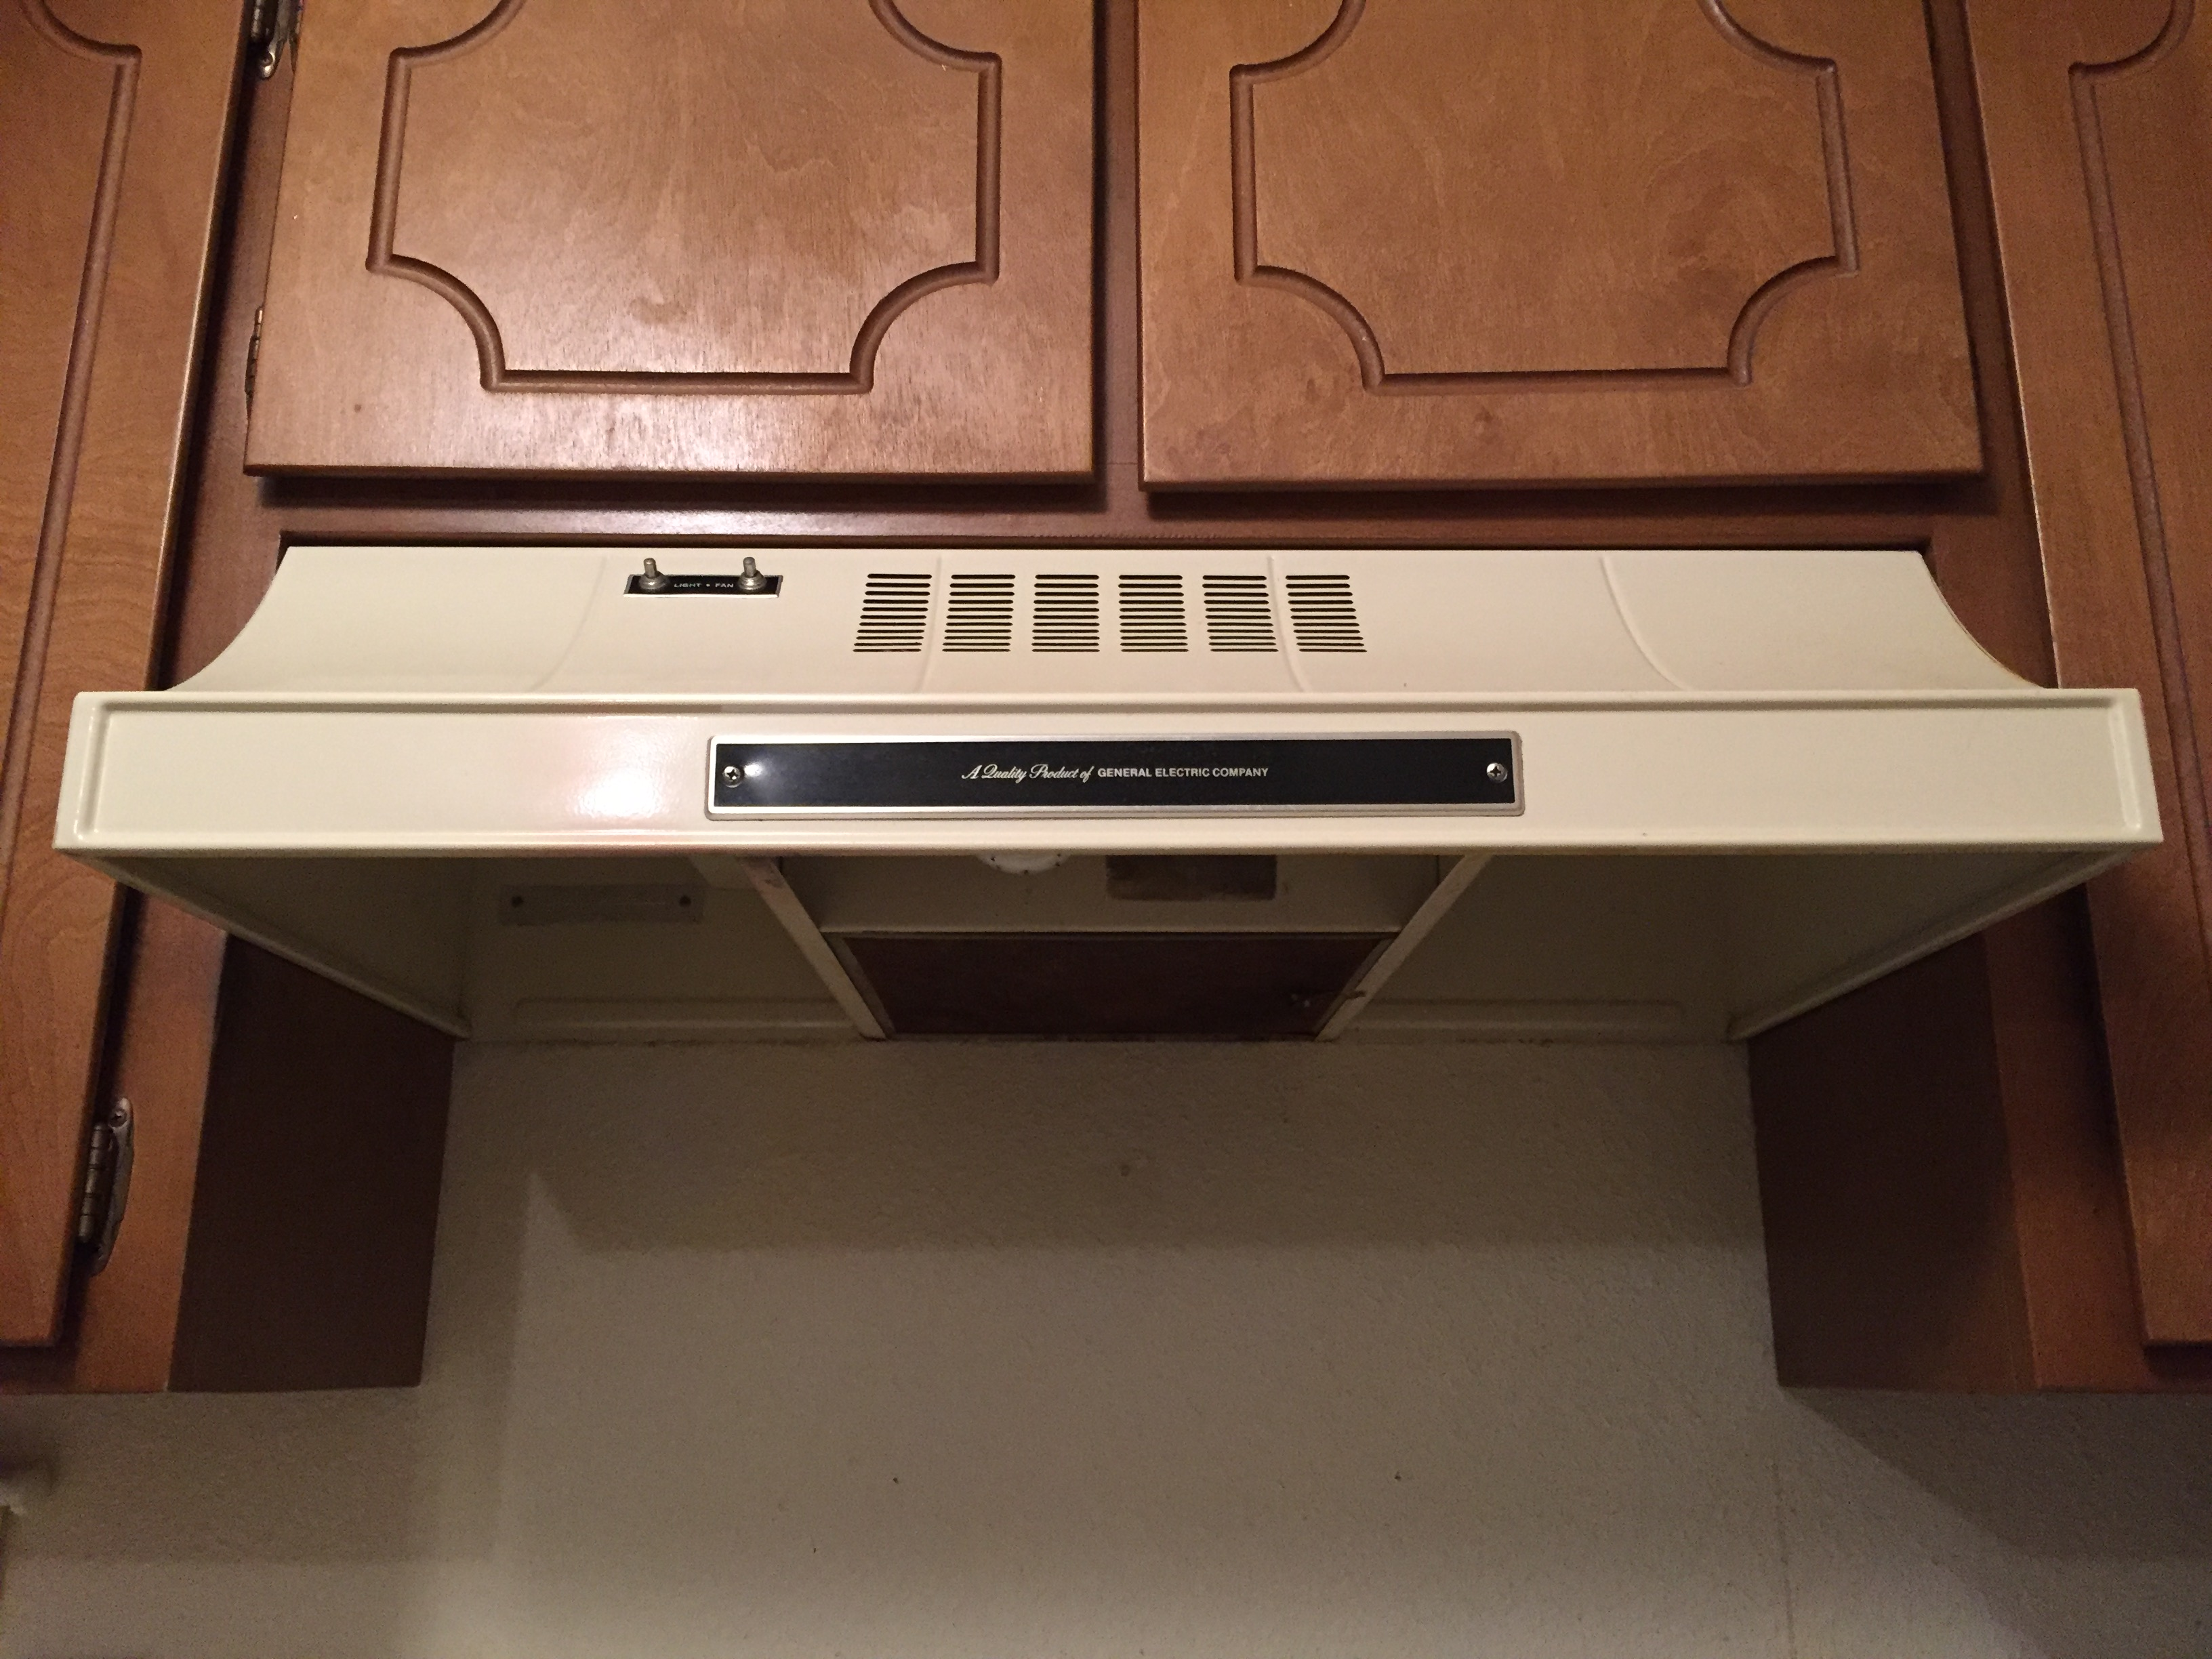 https commons wikimedia org wiki file general electric oven exhaust hood model n320 003ad img01 jpg